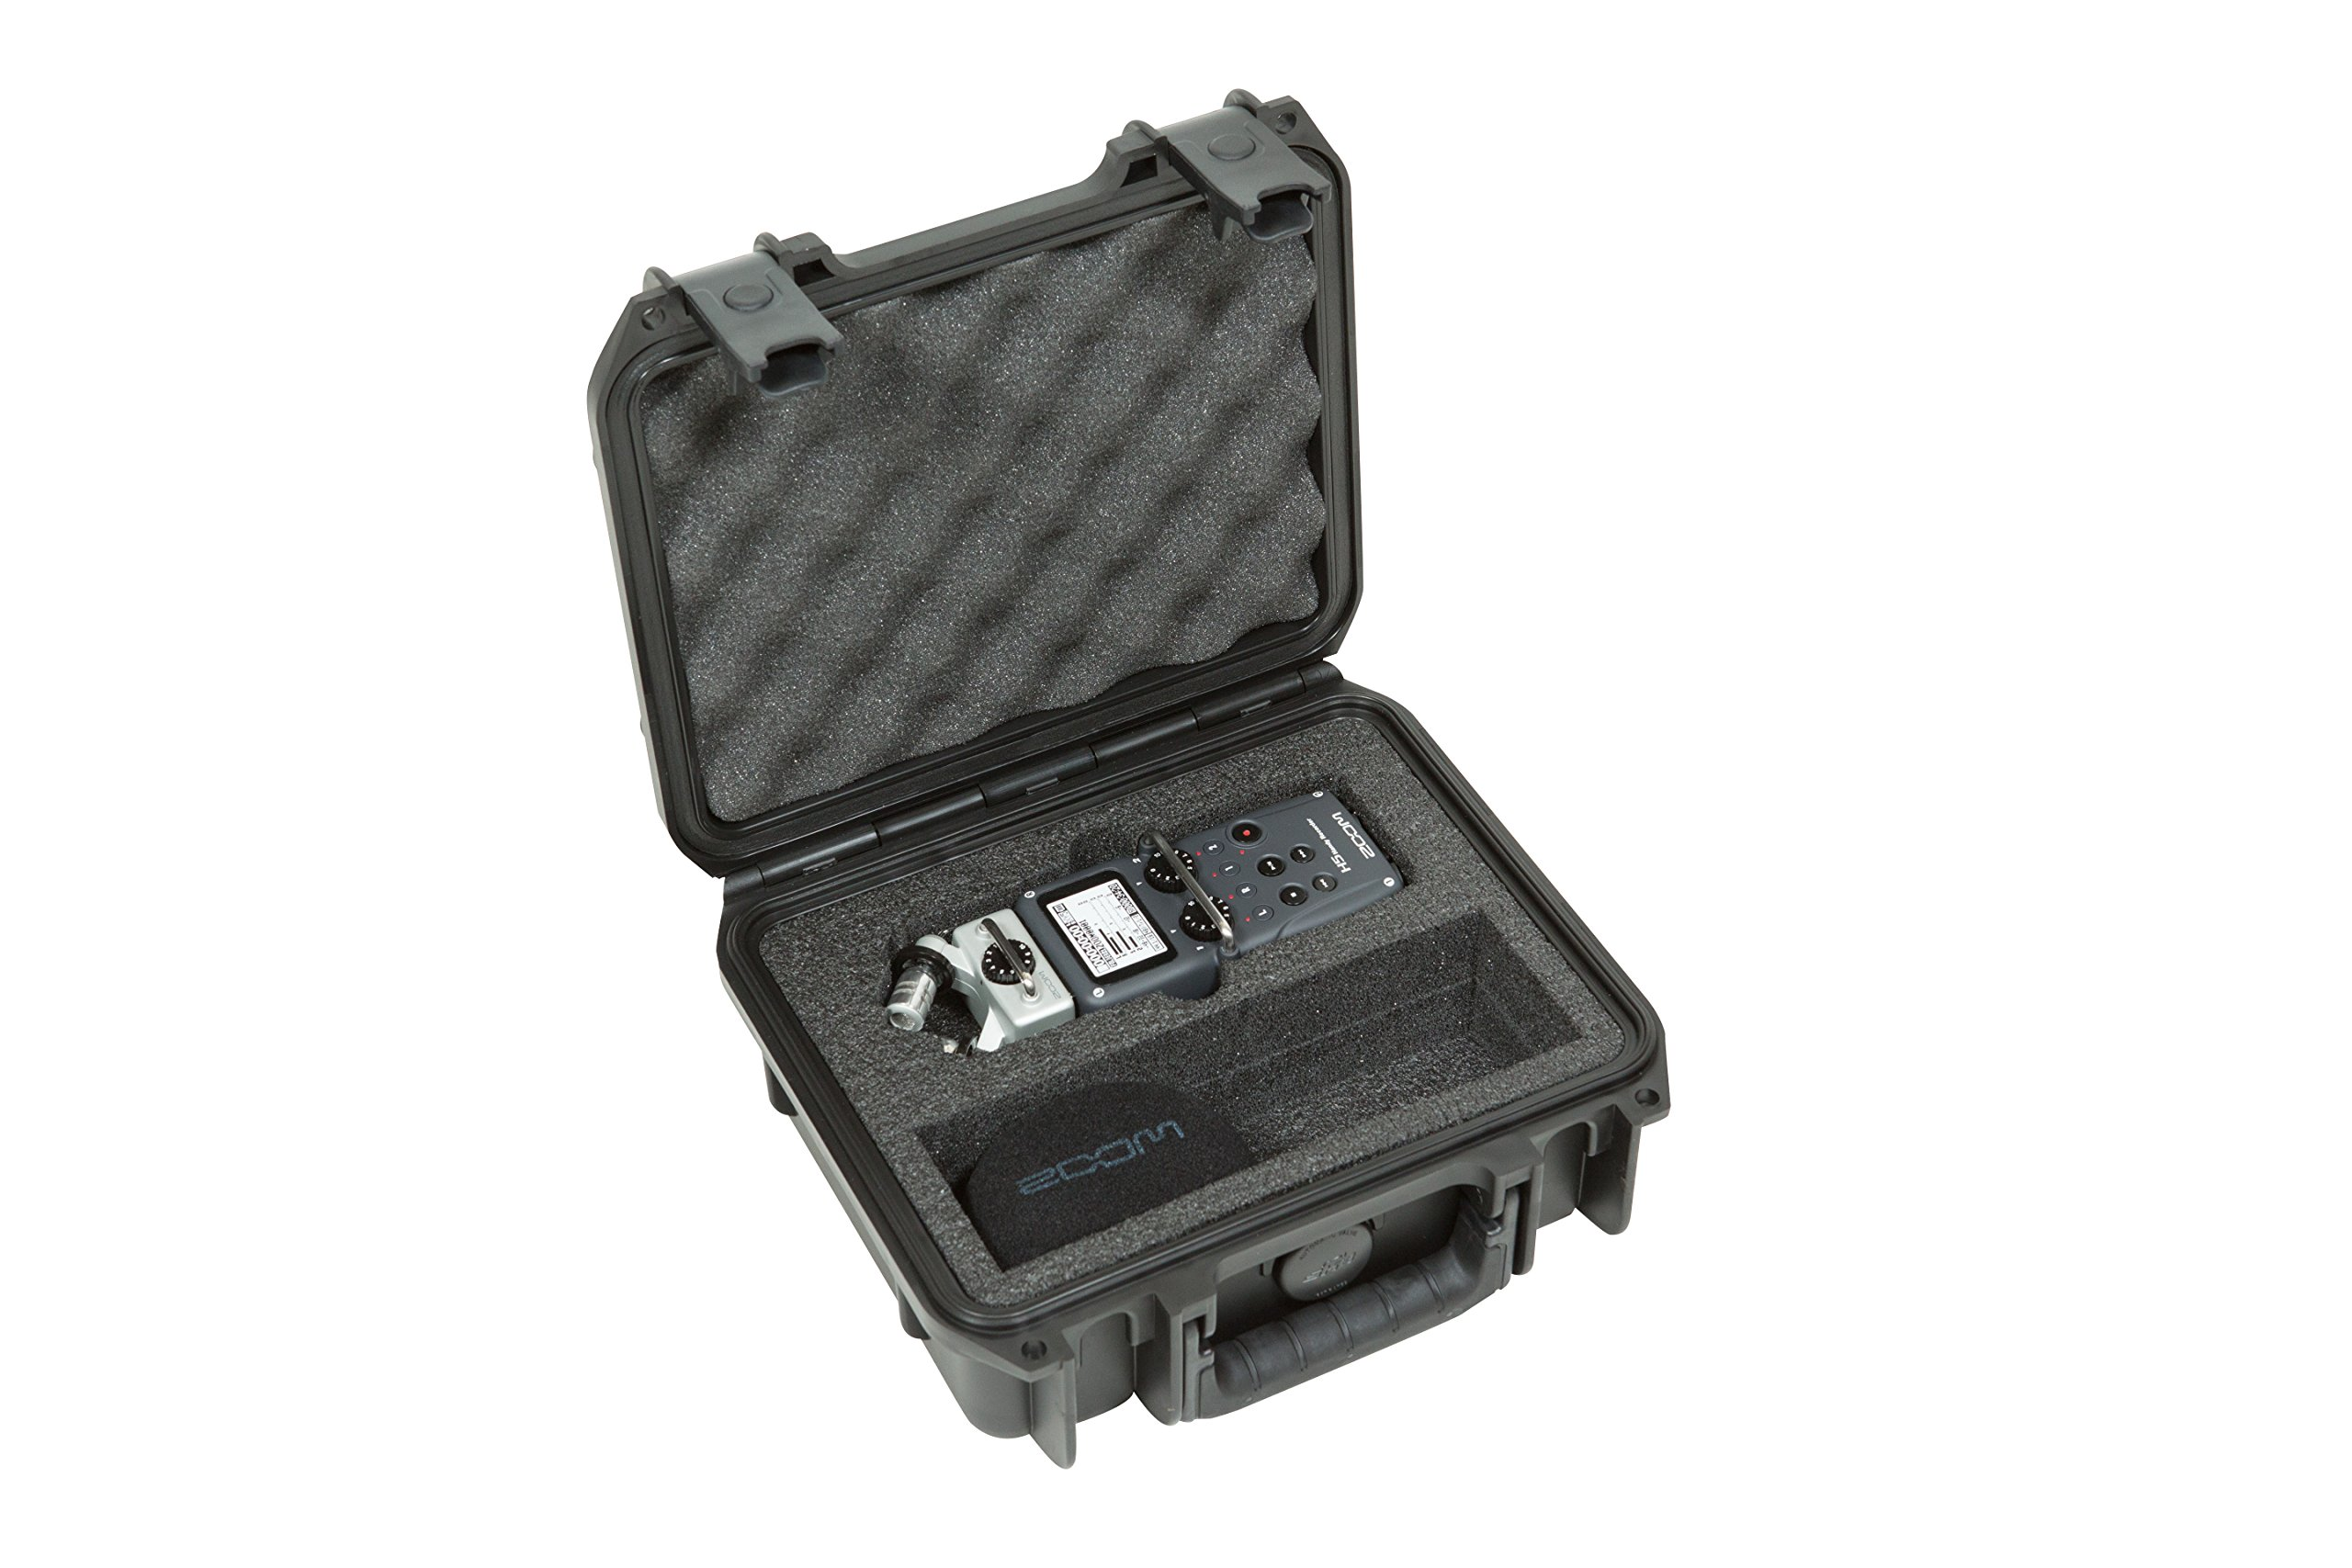 SKB 3i-0907-4-H5 Injection Molded Case for Zoom H5 Recorder by SKB